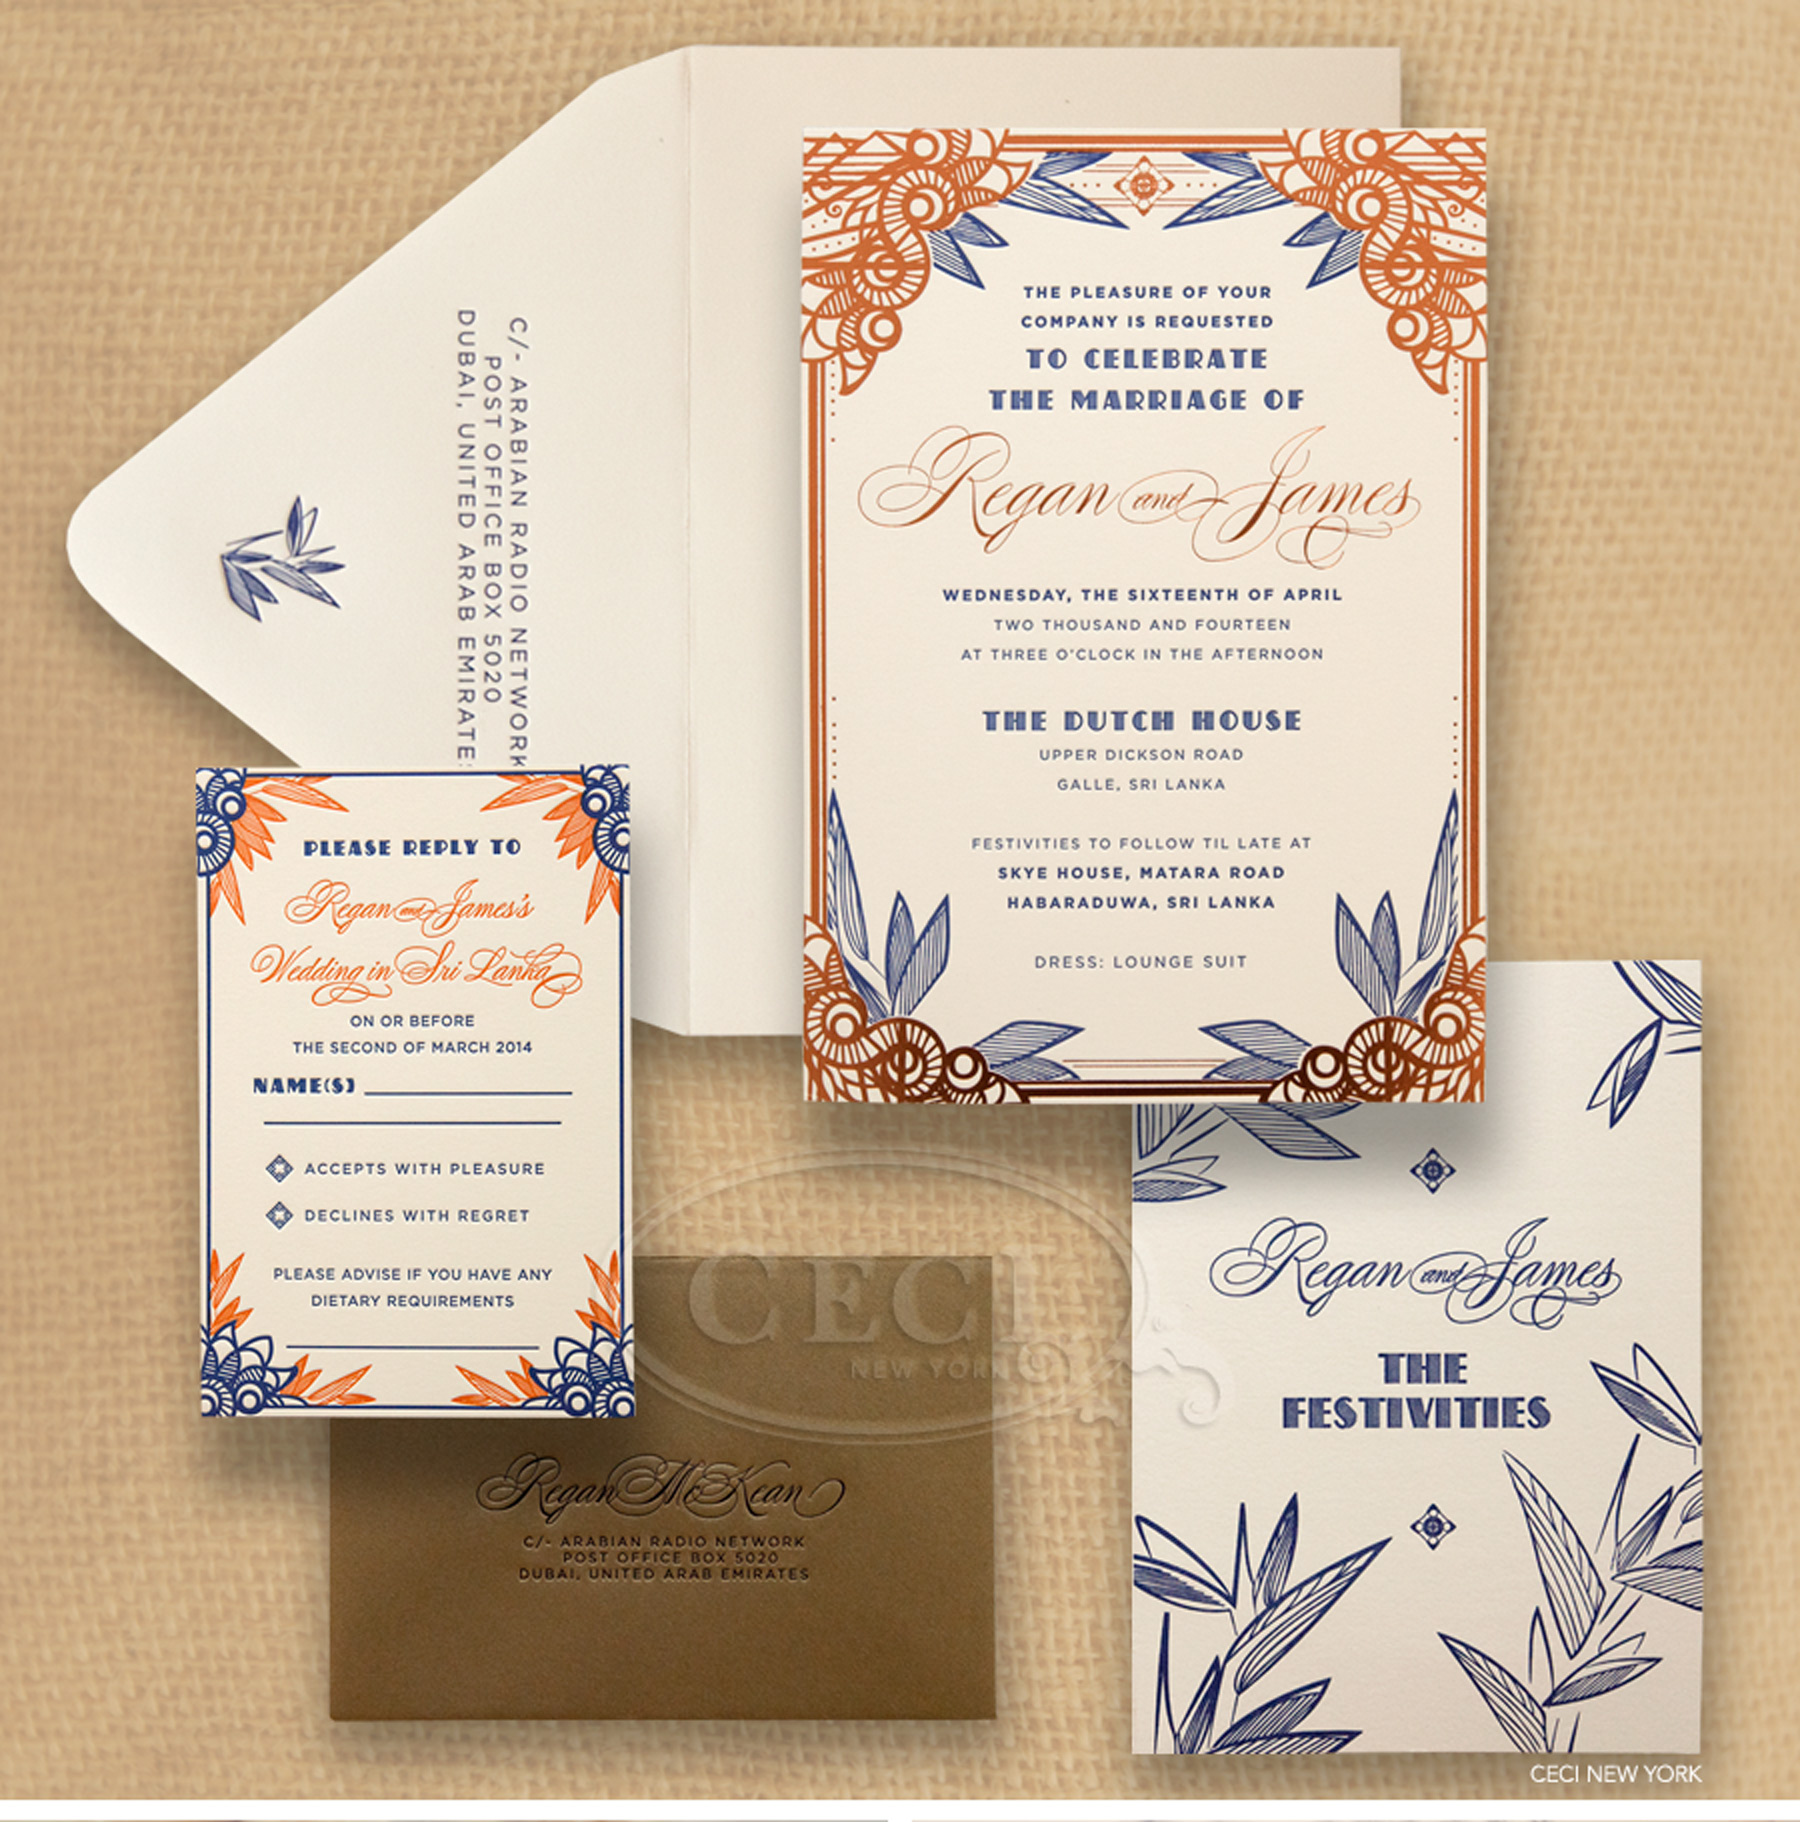 ... wedding, sri lanka, international, activities, festivities, card, deco